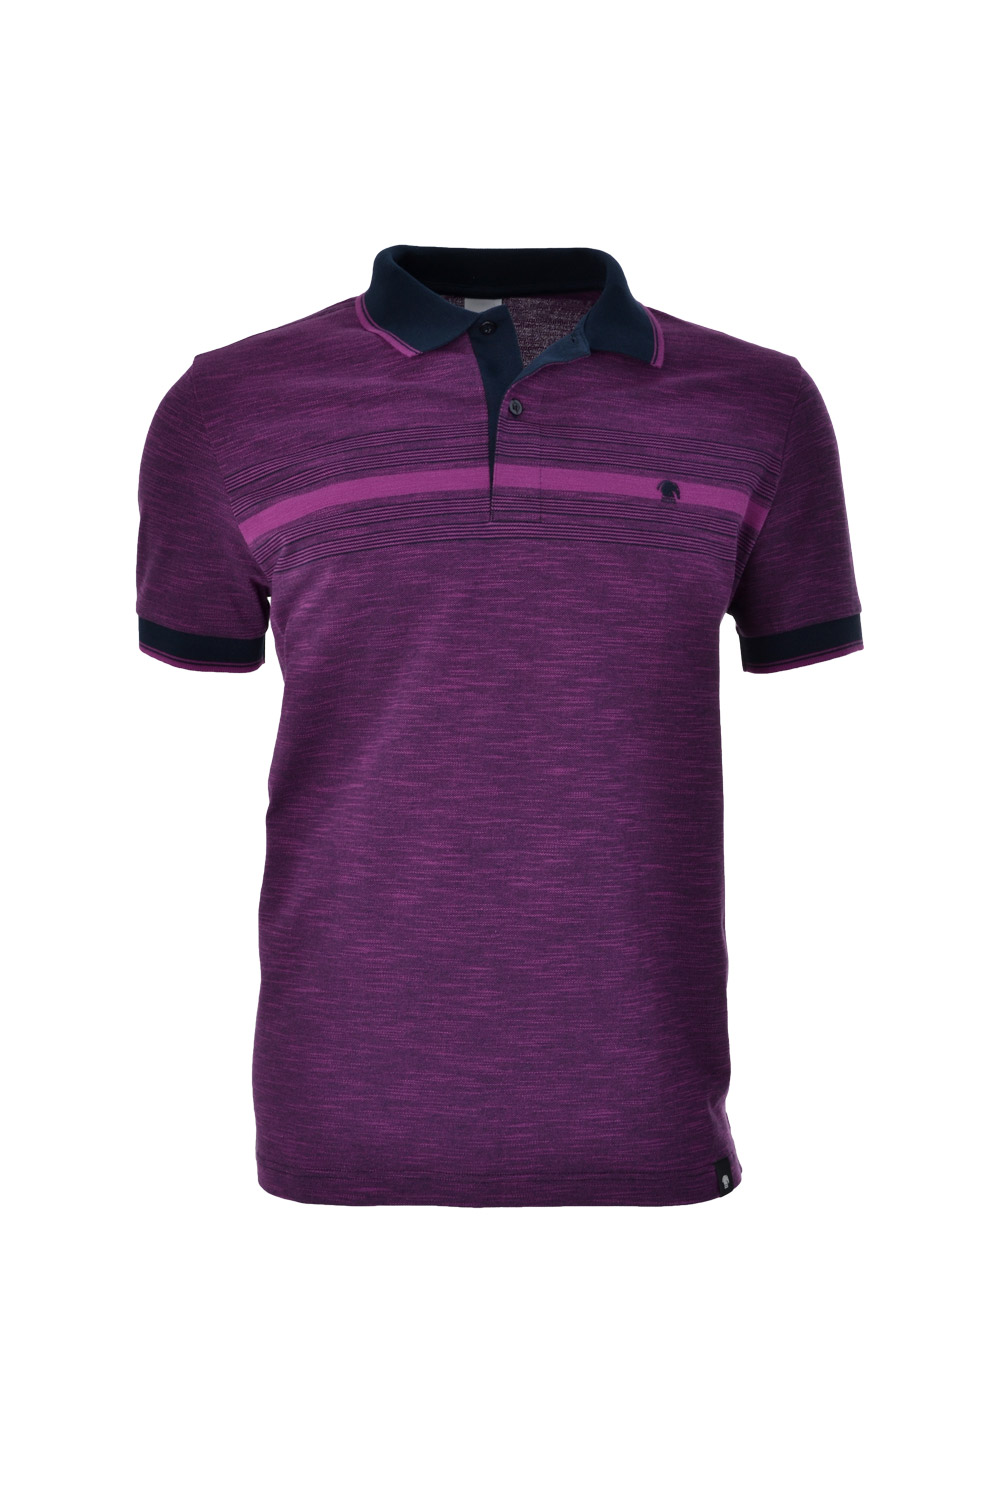 POLO MC CASUAL ALGODAO & ELASTANO STRETCH PIQUET FLAME